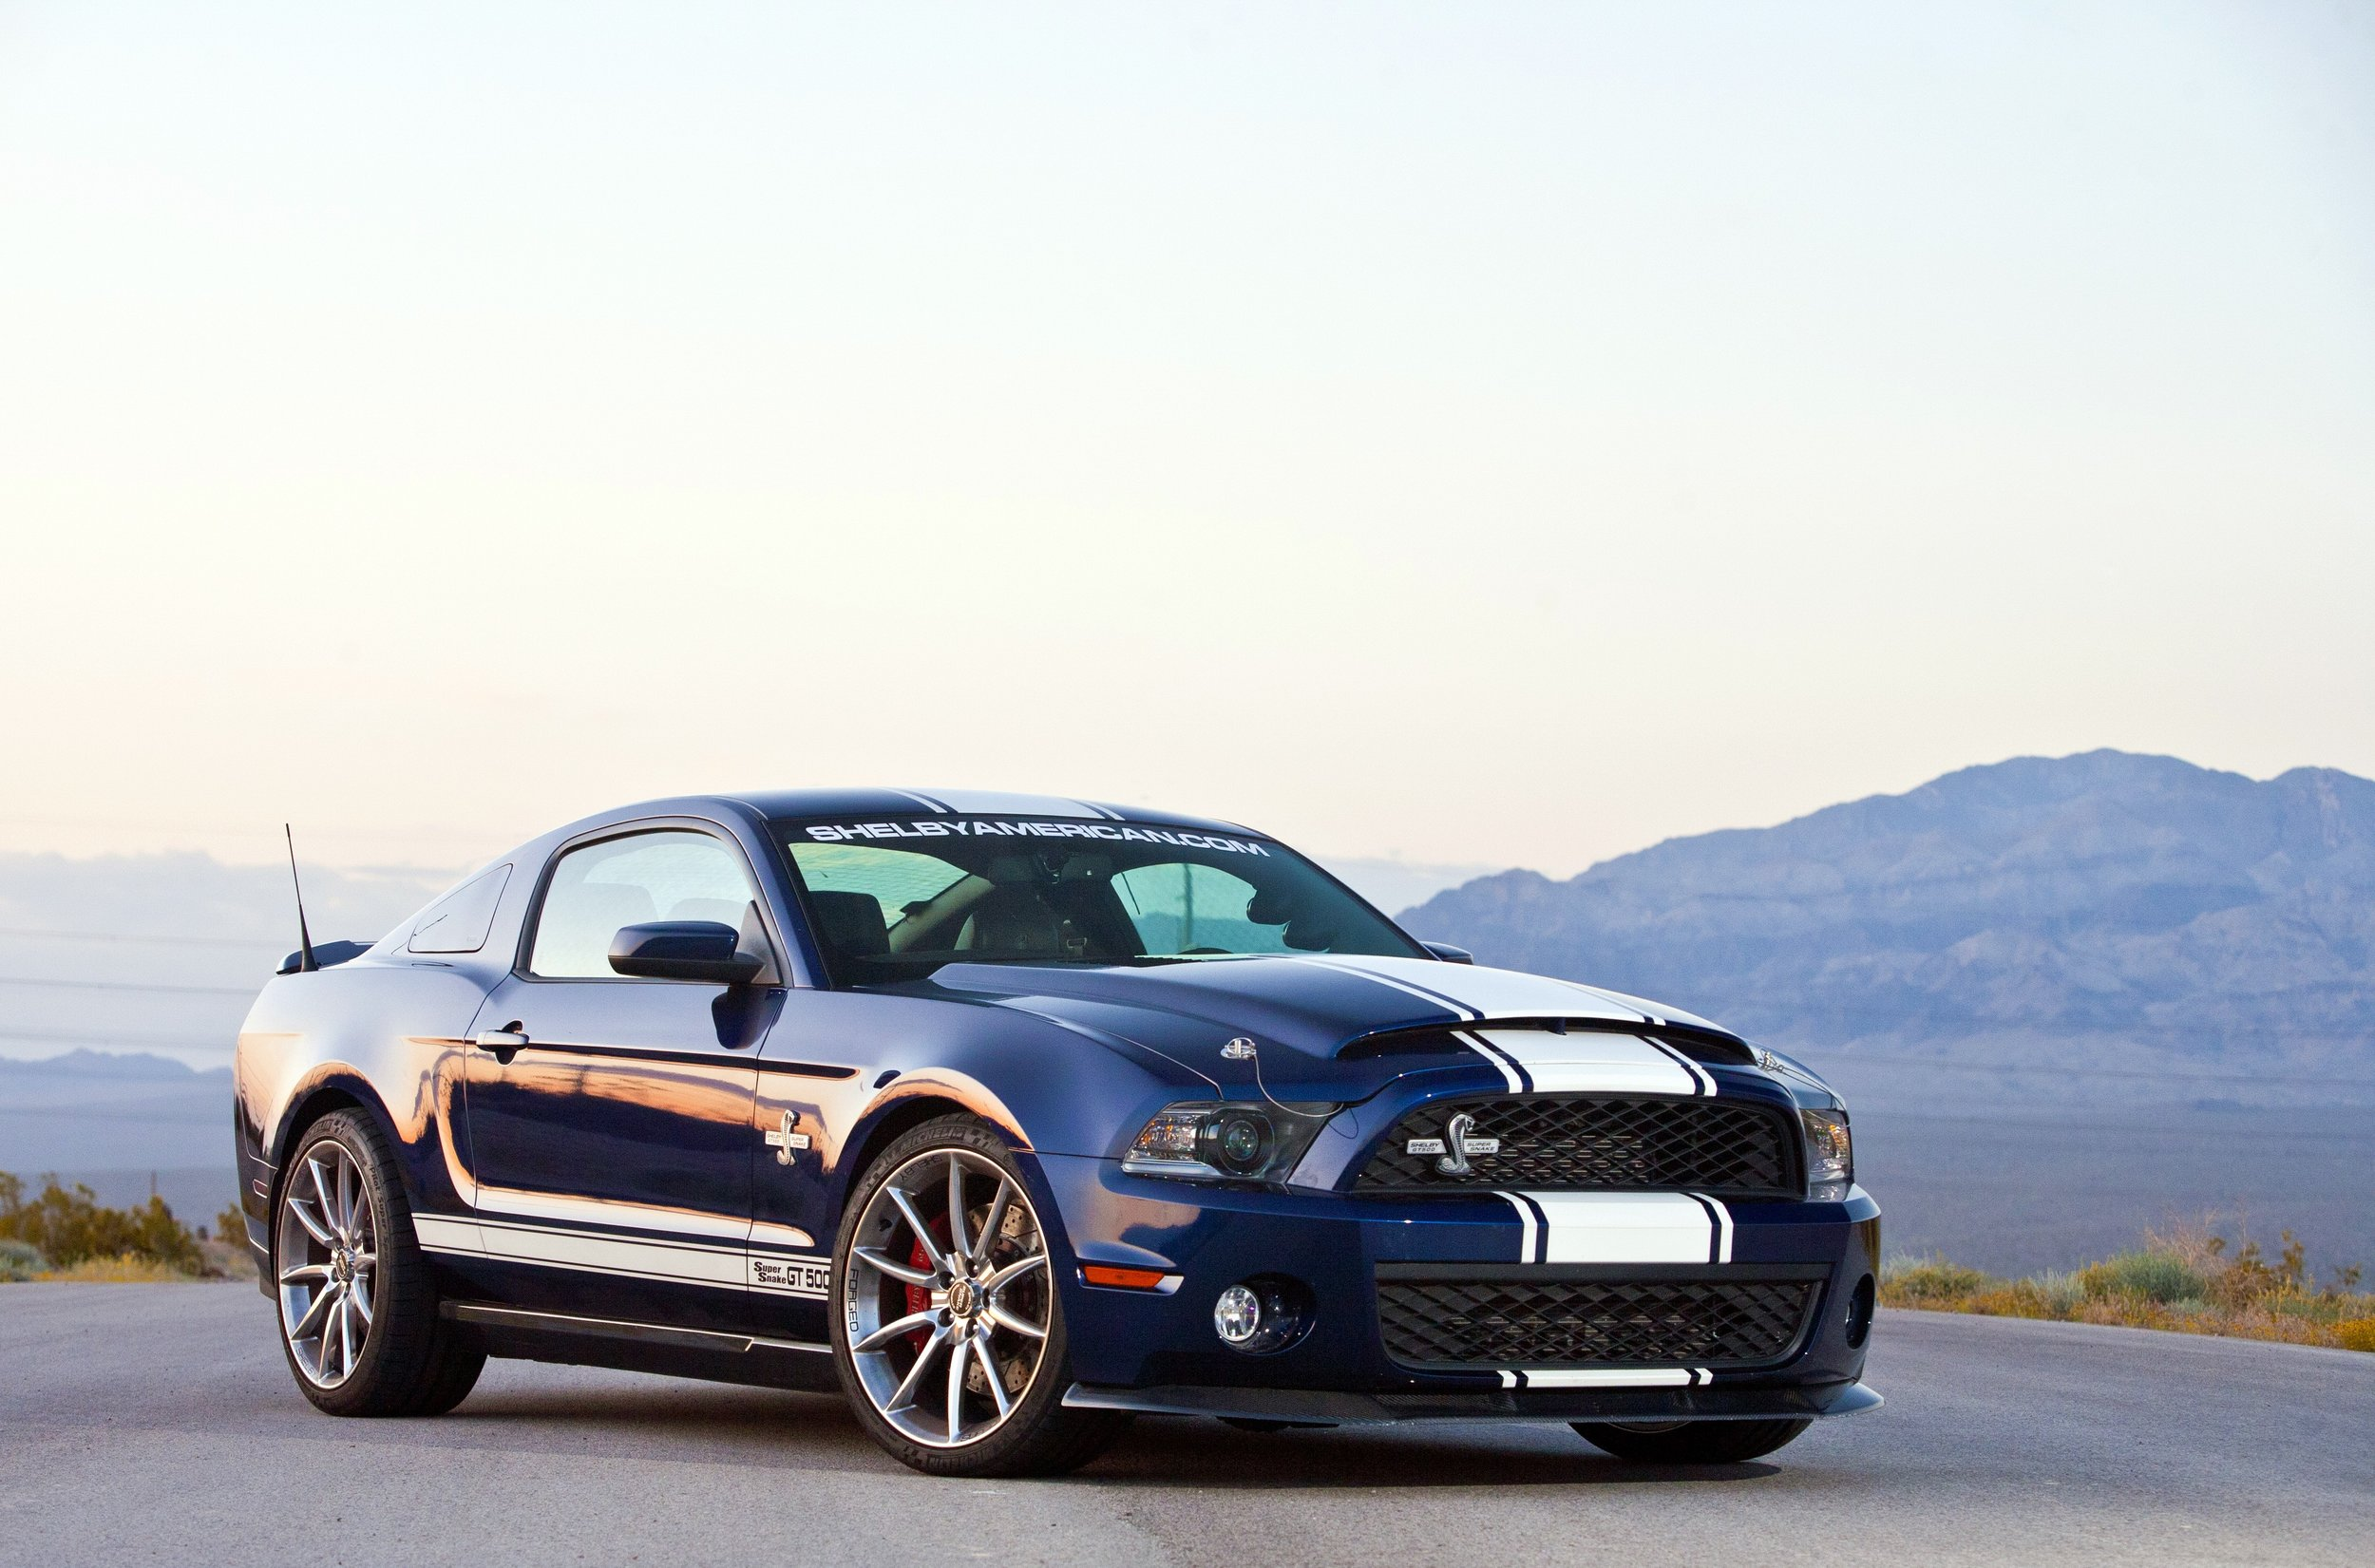 FORD-Mustang-Shelby-GT500-3920_42.jpg